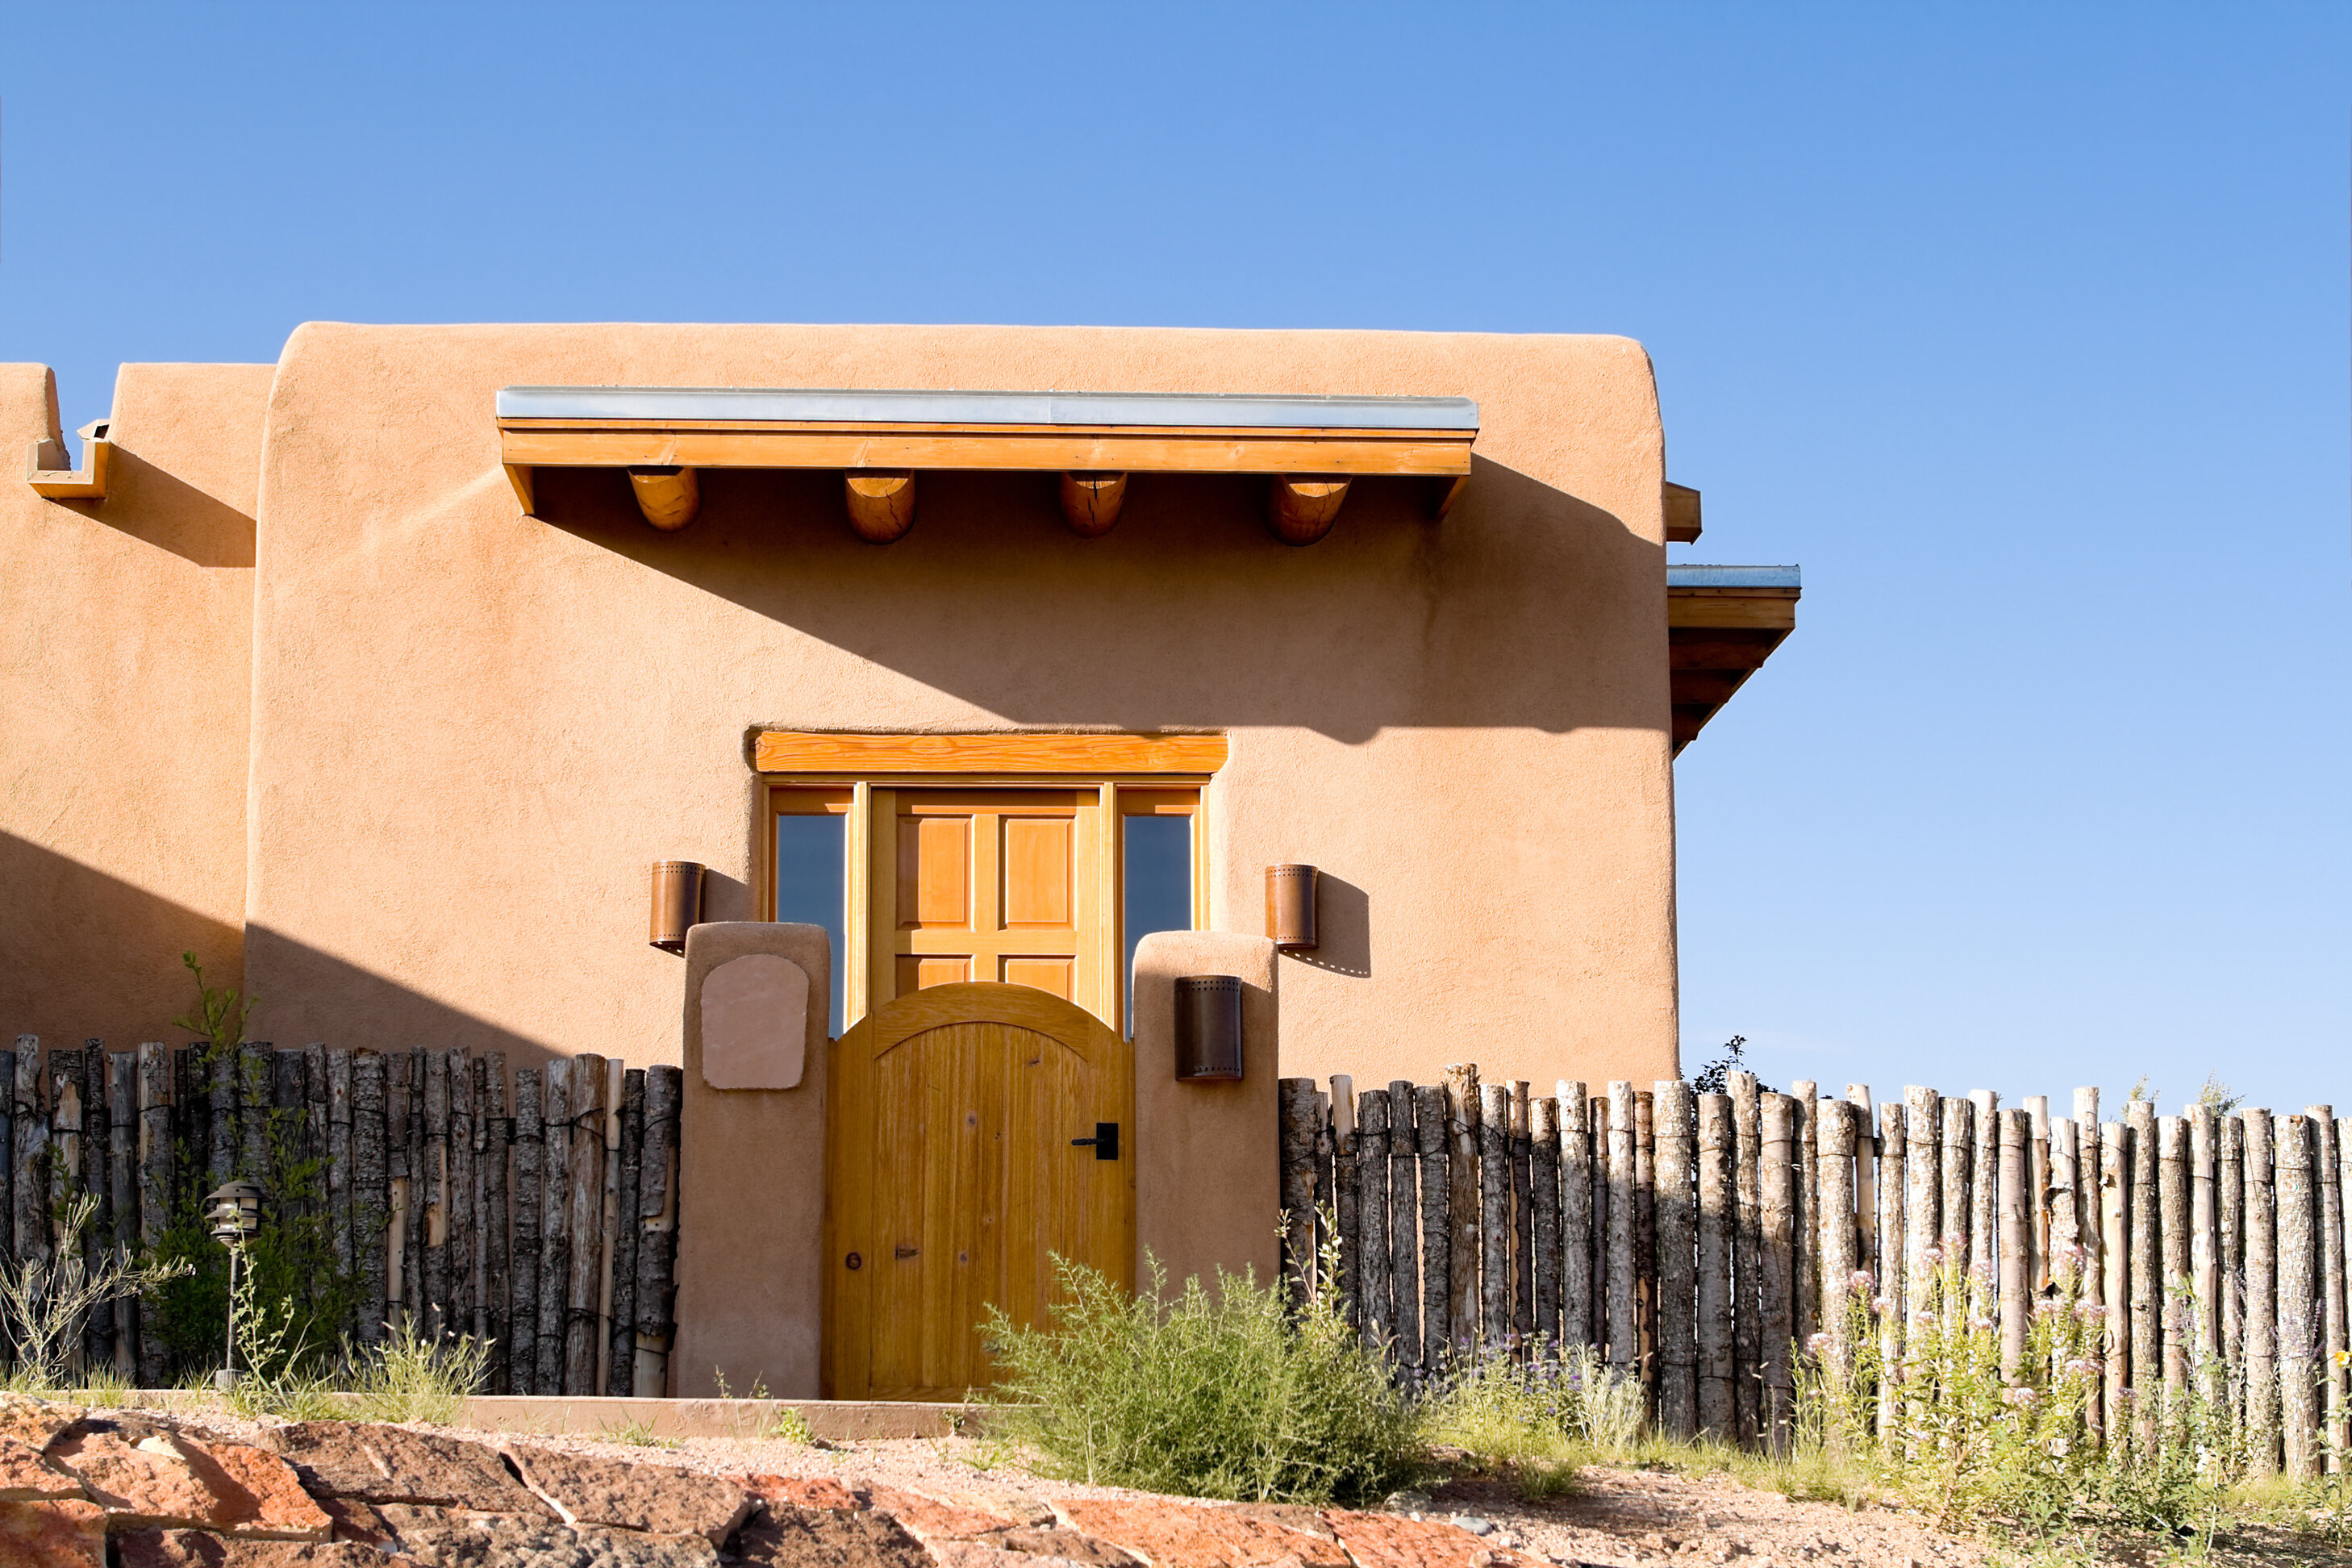 An Adobe style home with wood-log fence and wooden front door.